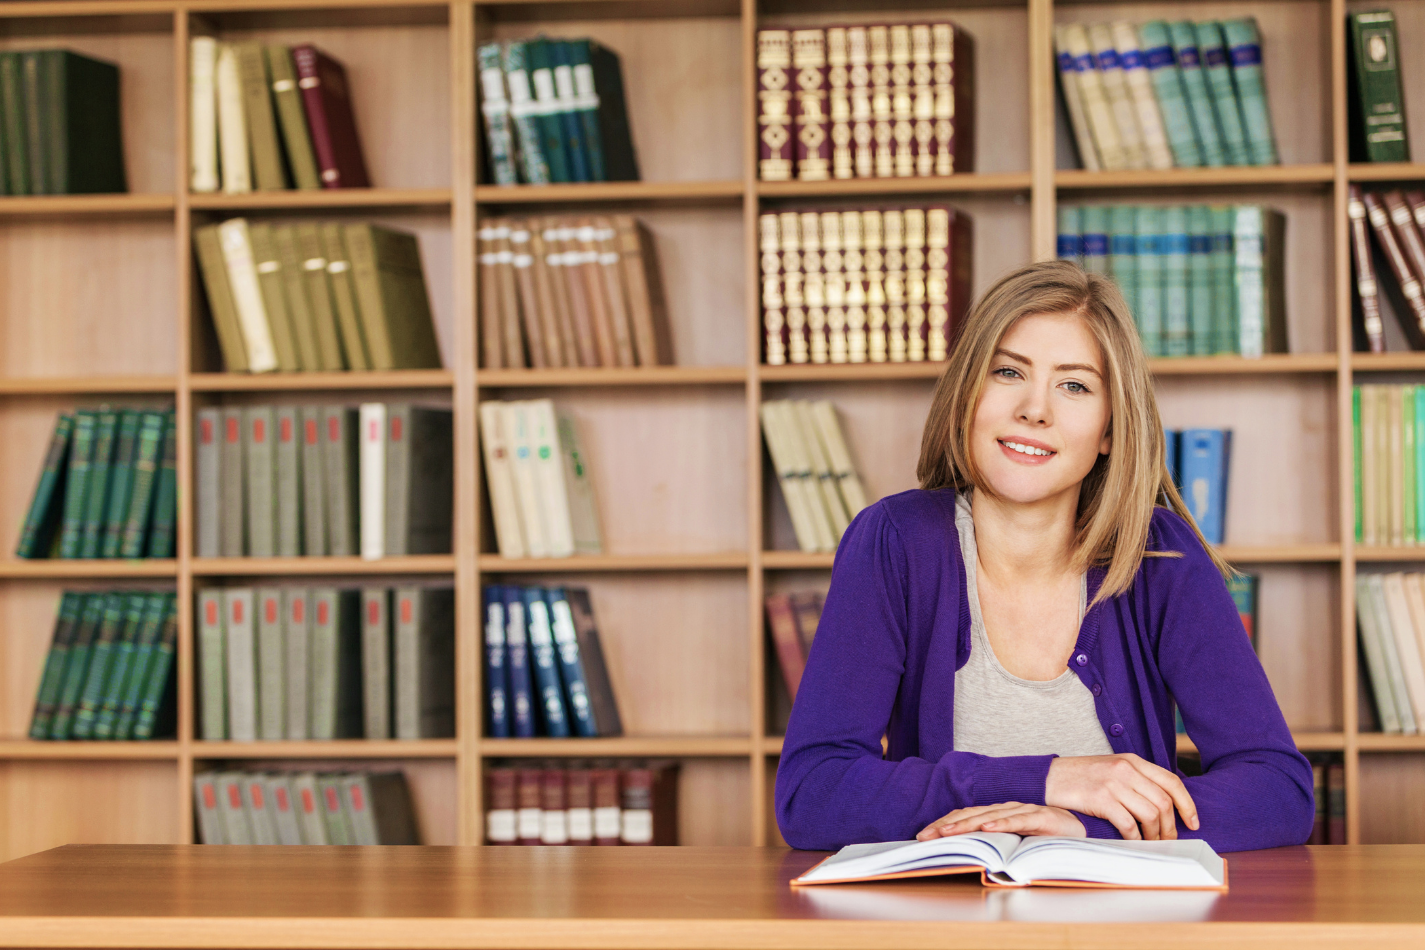 image of a woman smiling at the camera with book if front of her and with a library background